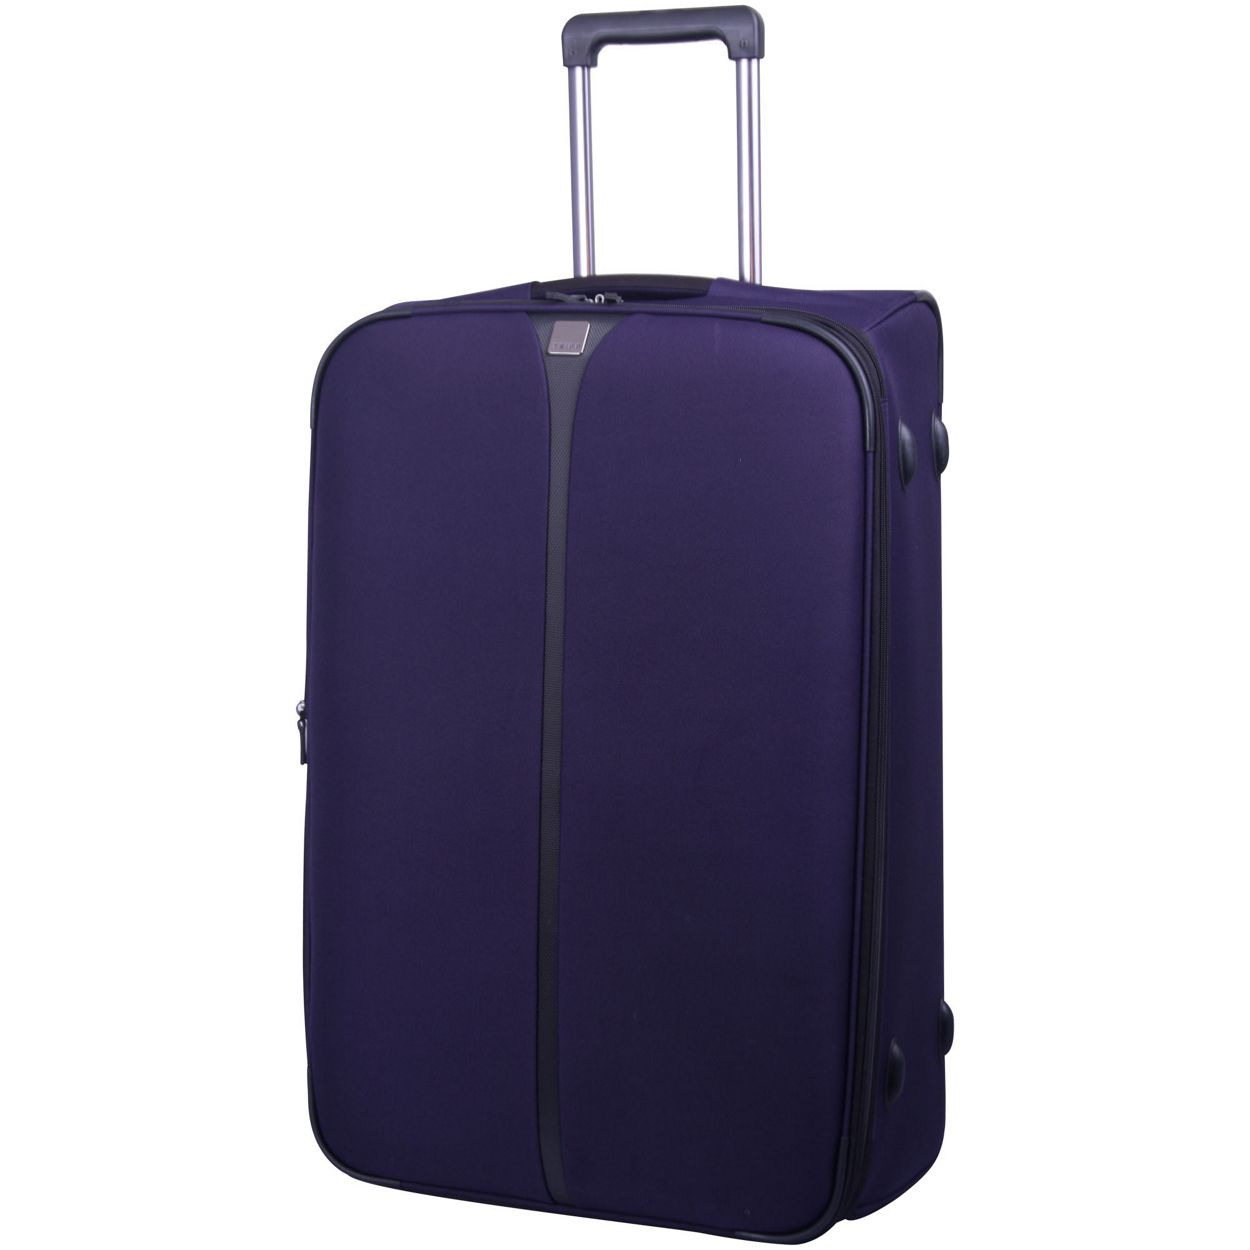 Luggage - Sale | Debenhams